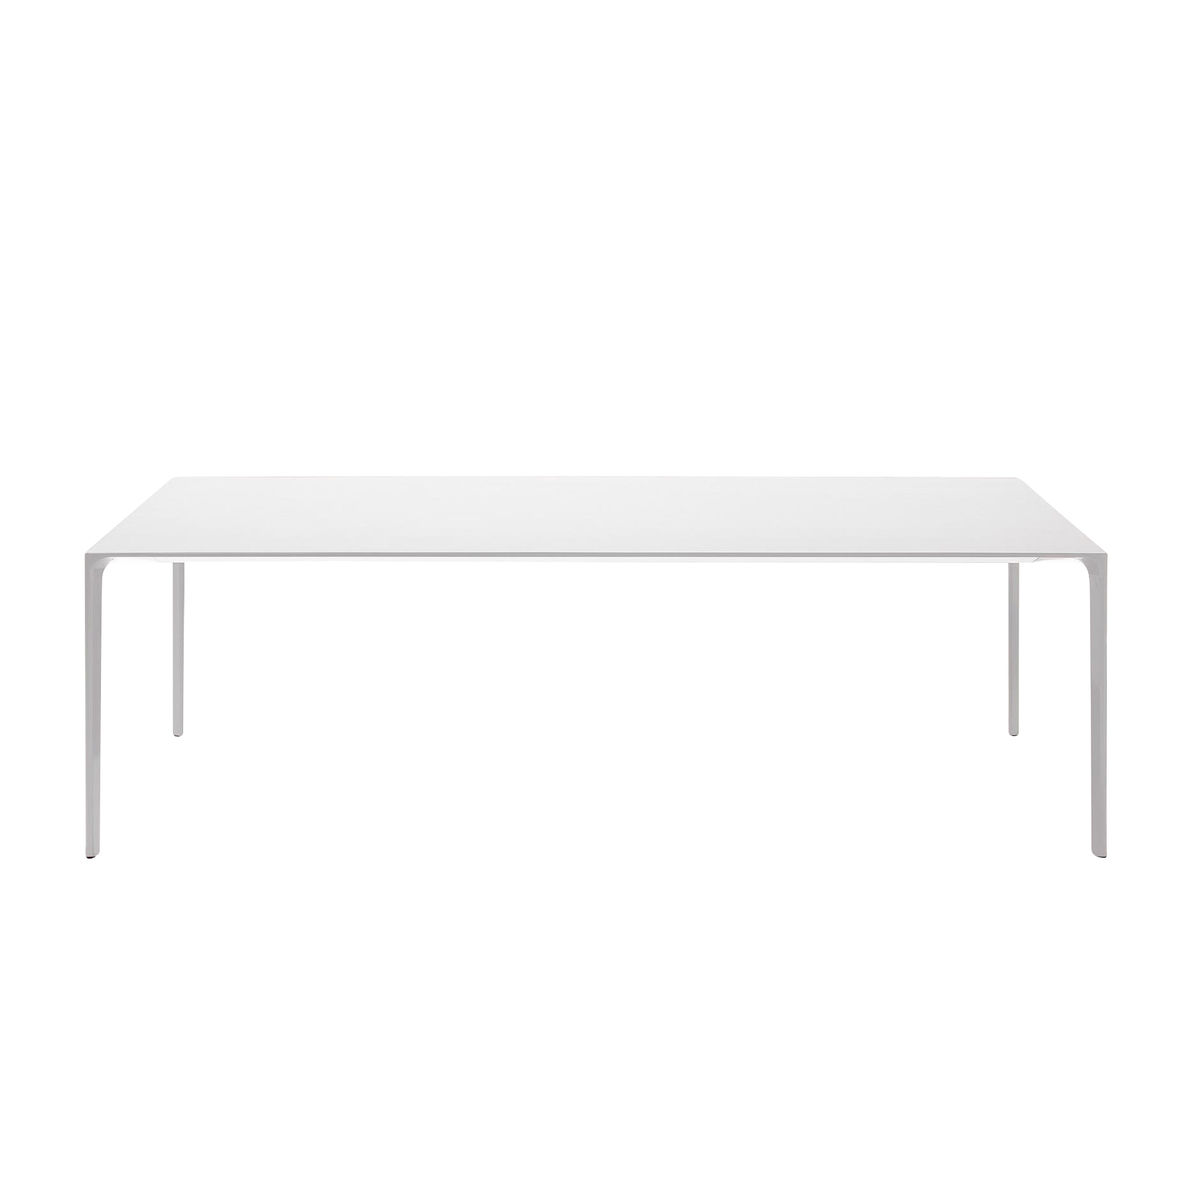 Slim Dining Room Tables Images Built In Bench